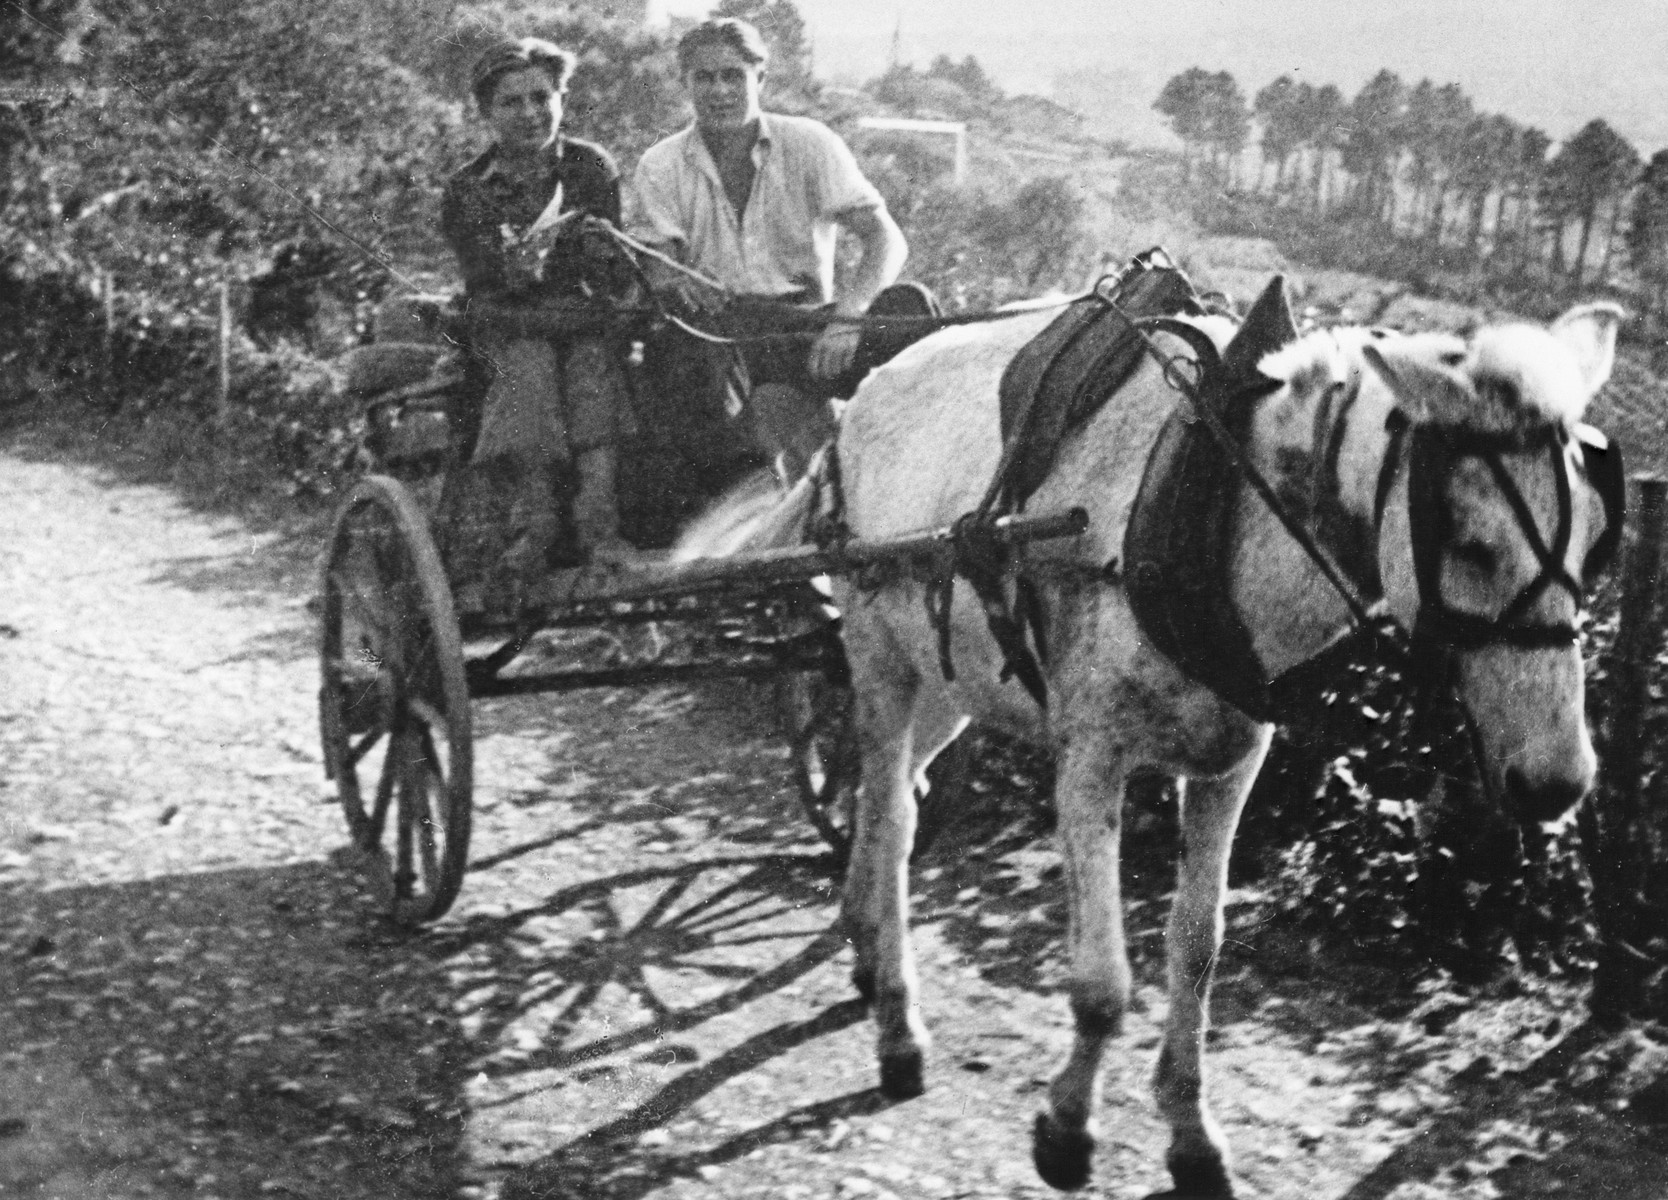 Two refugee teenagers, one Czech and one Jewish, ride in a horse-driven cart, in a farm in Vallon under the protection of the MACE.  Pictured are Arthur Reichl and Zadina.